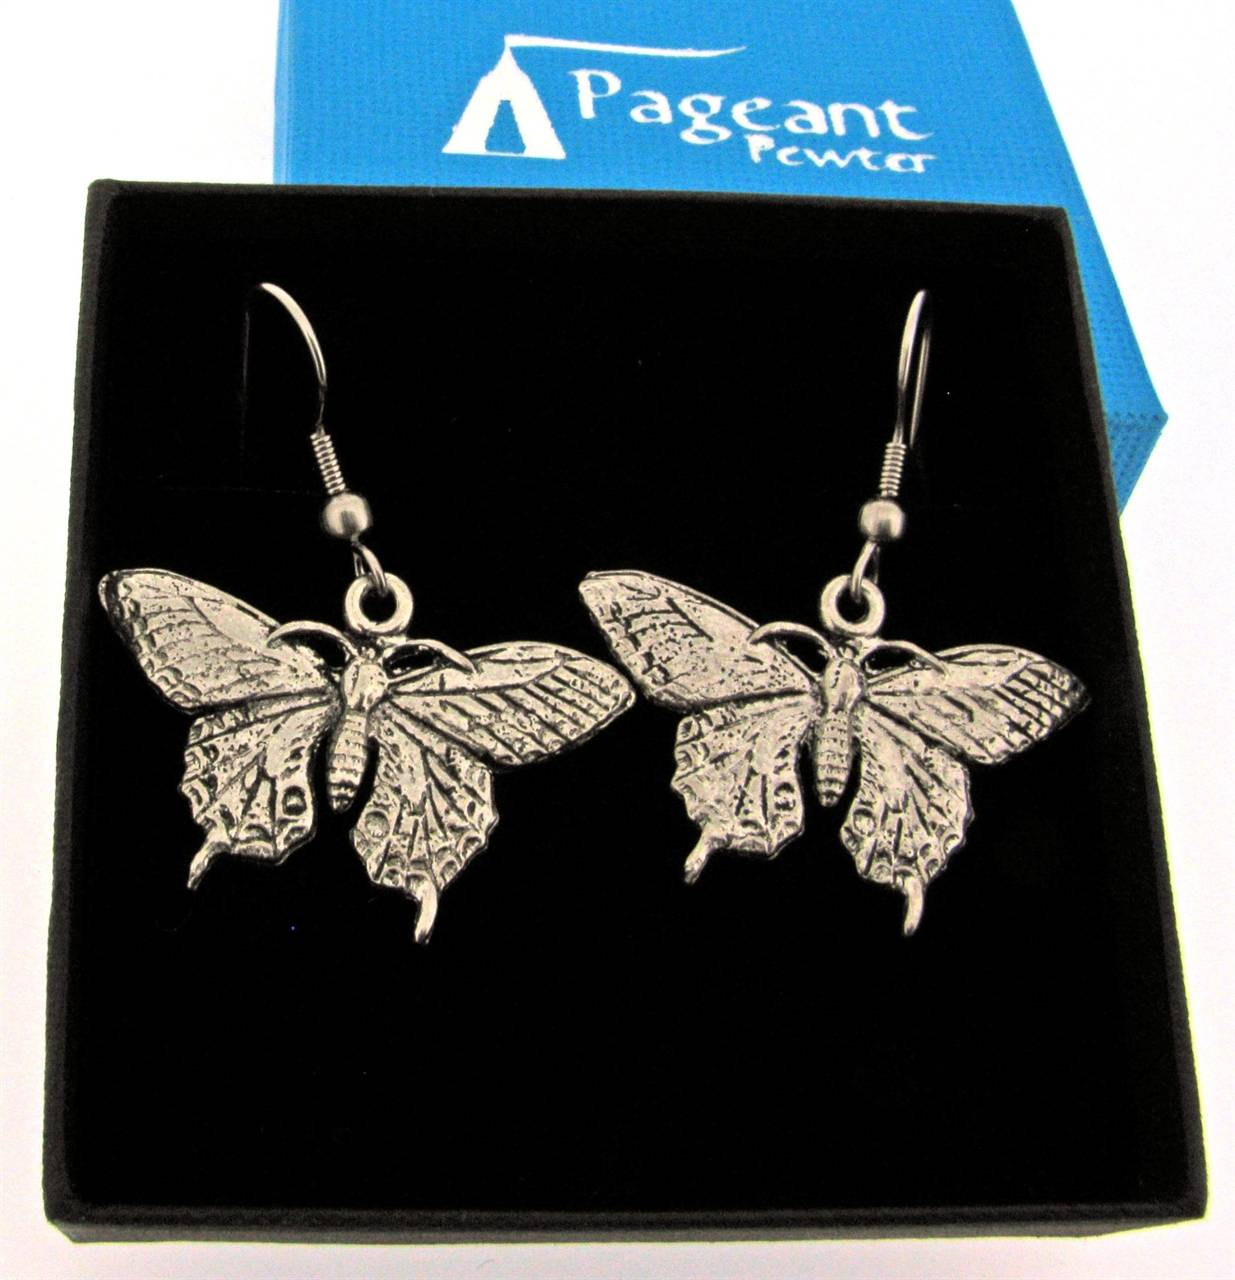 Butterfly Earrings - high quality pewter gifts from Pageant Pewter